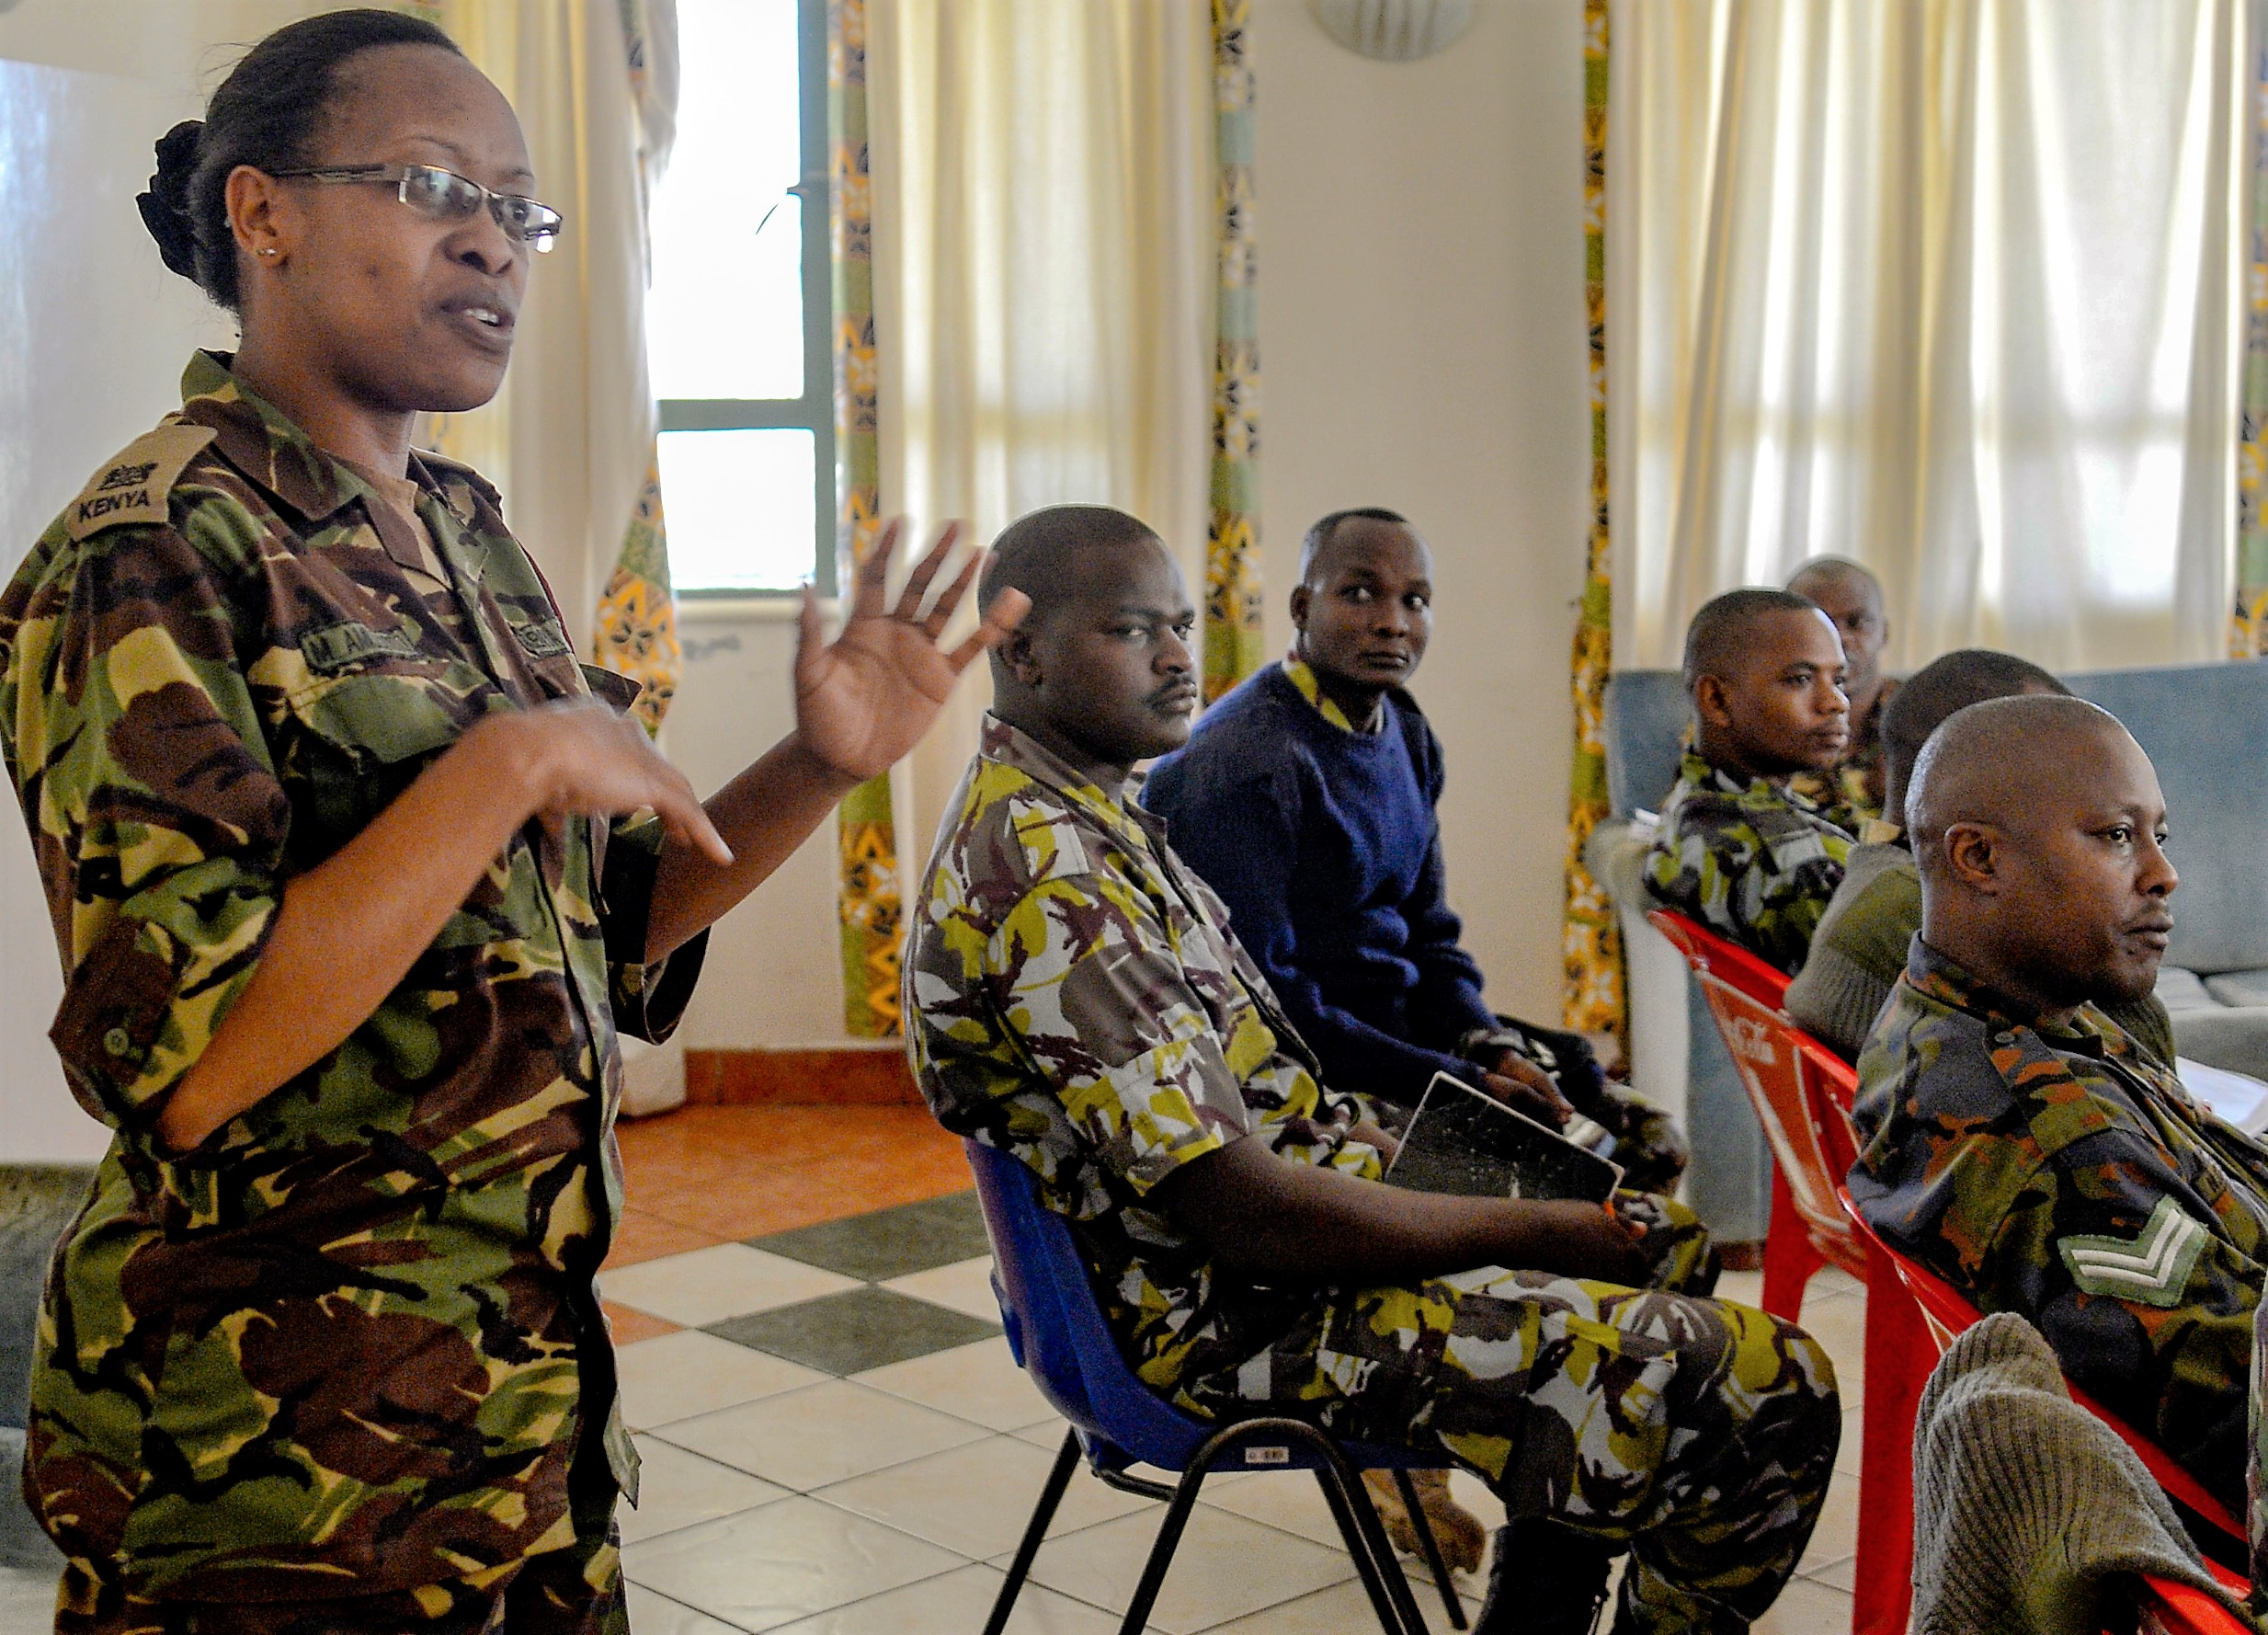 Kenya Defense Force (KDF) Maj. Marion Amulyoto, a veterinarian with KDF's 1st Canine Regiment, discusses the hazards of heat exhaustion for military working dogs for members of the Kenyan Defense Force's 1st Canine Regiment during a  knowledge exchange, in Nairobi, Kenya, August 7, 2018. The exchange gave a chance for American and Kenyan forces to learn and work with each other to have a better understanding of each other's capabilities. (U.S. Navy Photo by Mass Communication Specialist 2nd Class Timothy M. Ahearn)